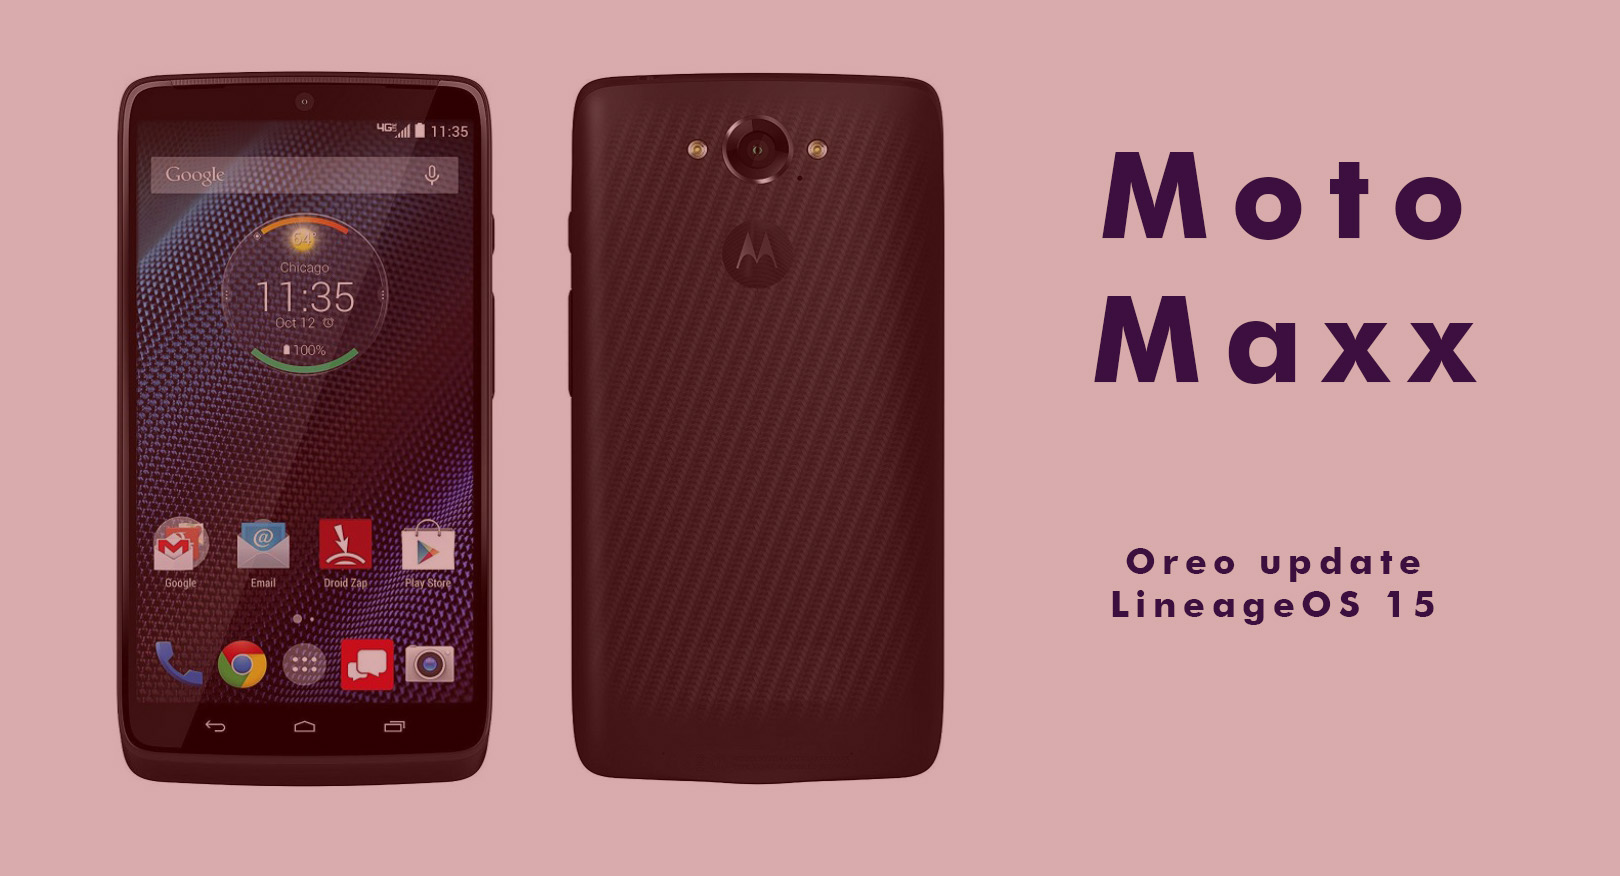 Moto Maxx Oreo update available thanks to LineageOS 15 ROM